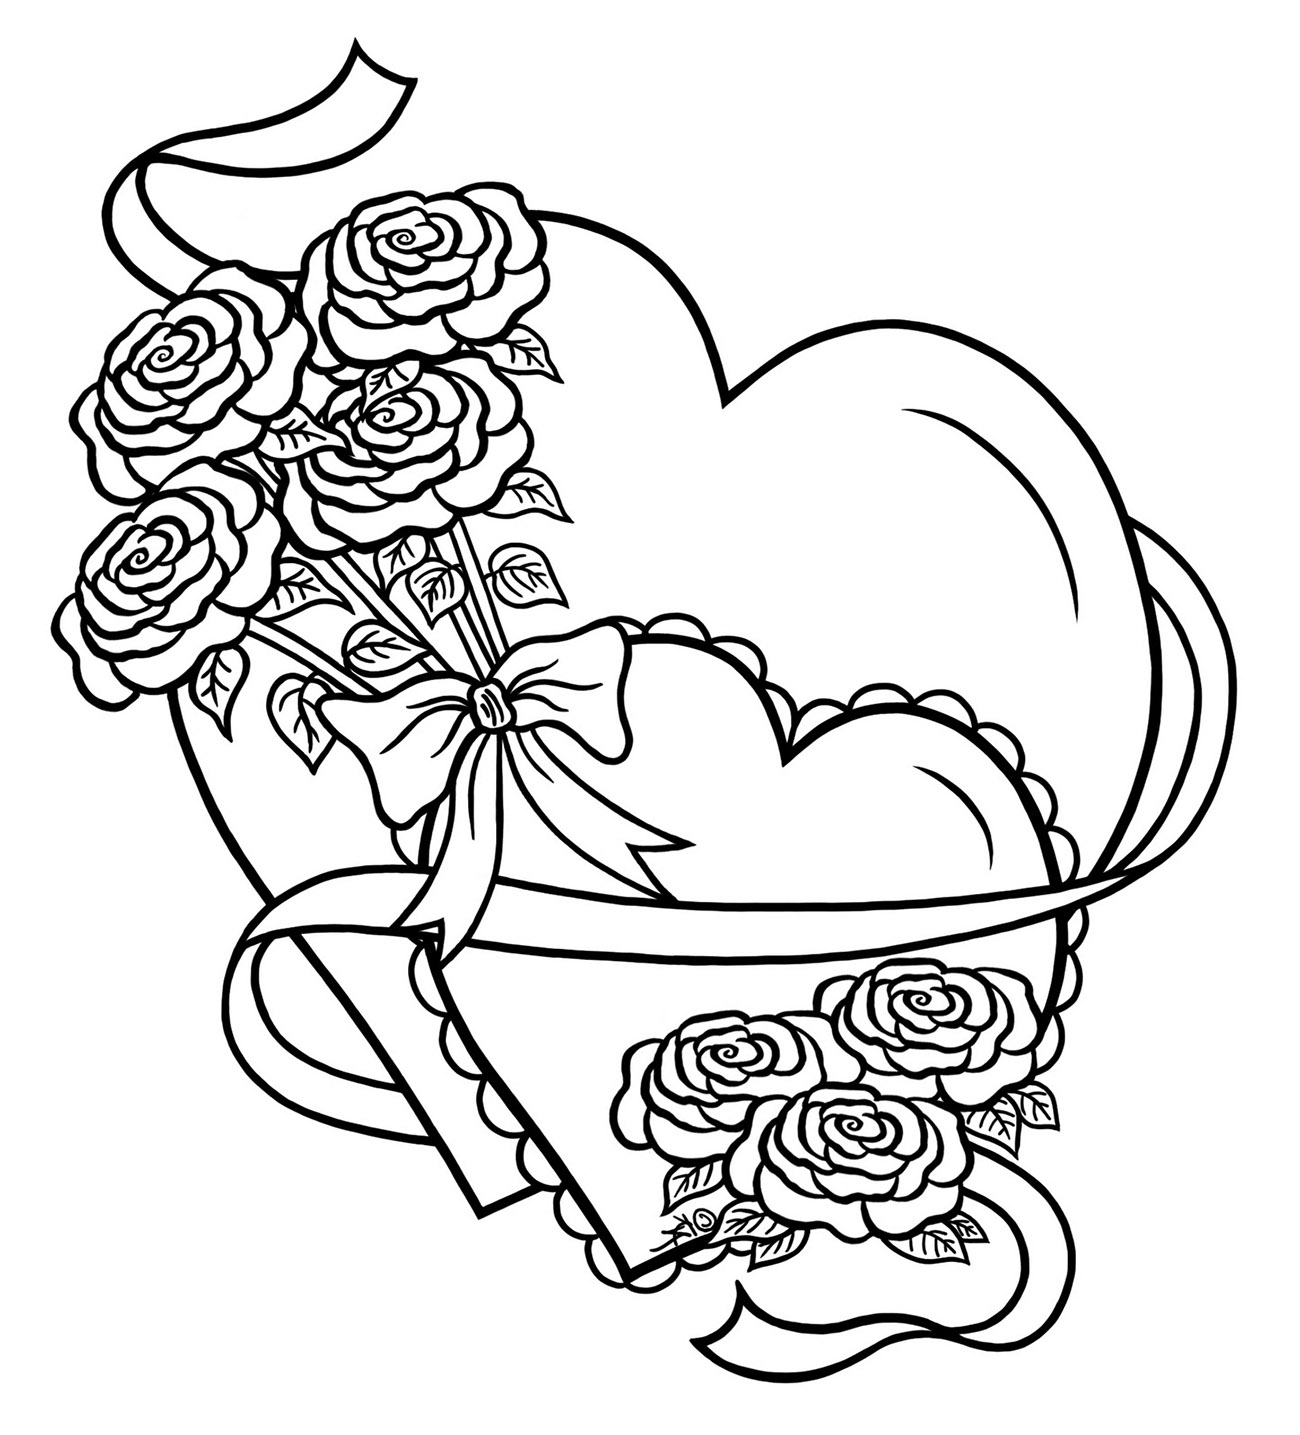 1300x1435 Love Simple Heart With Flowers Zen And Anti Stress